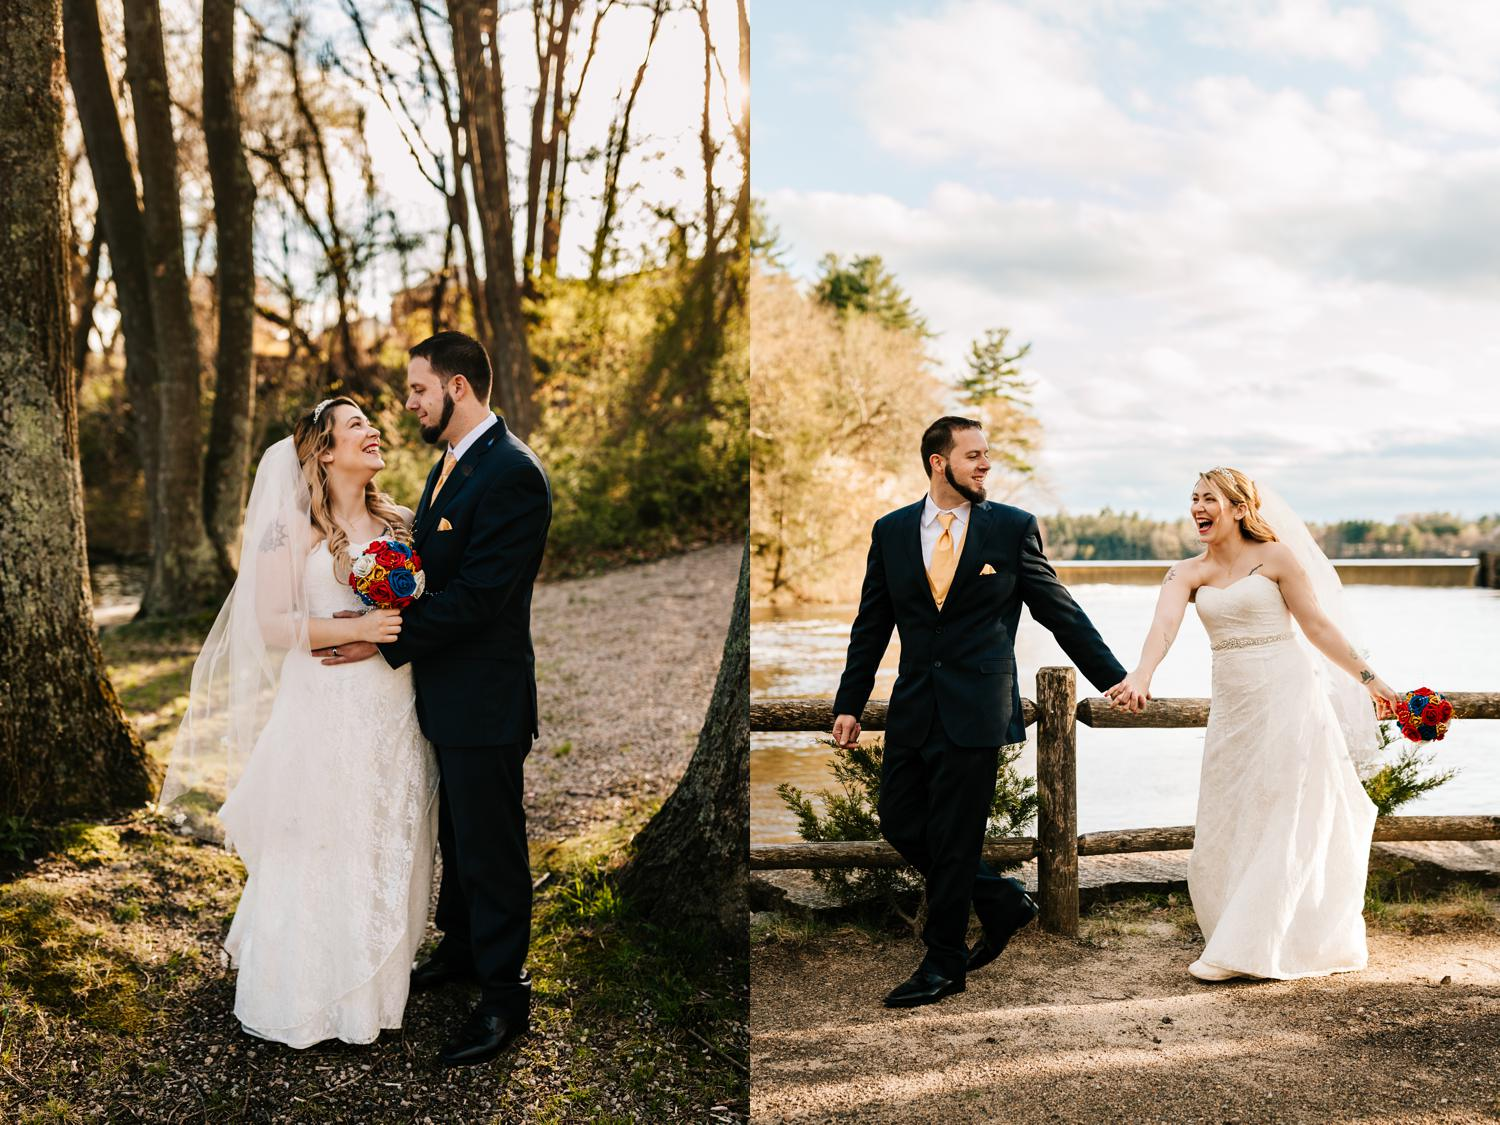 Tattooed bride and groom walking through park at golden hour